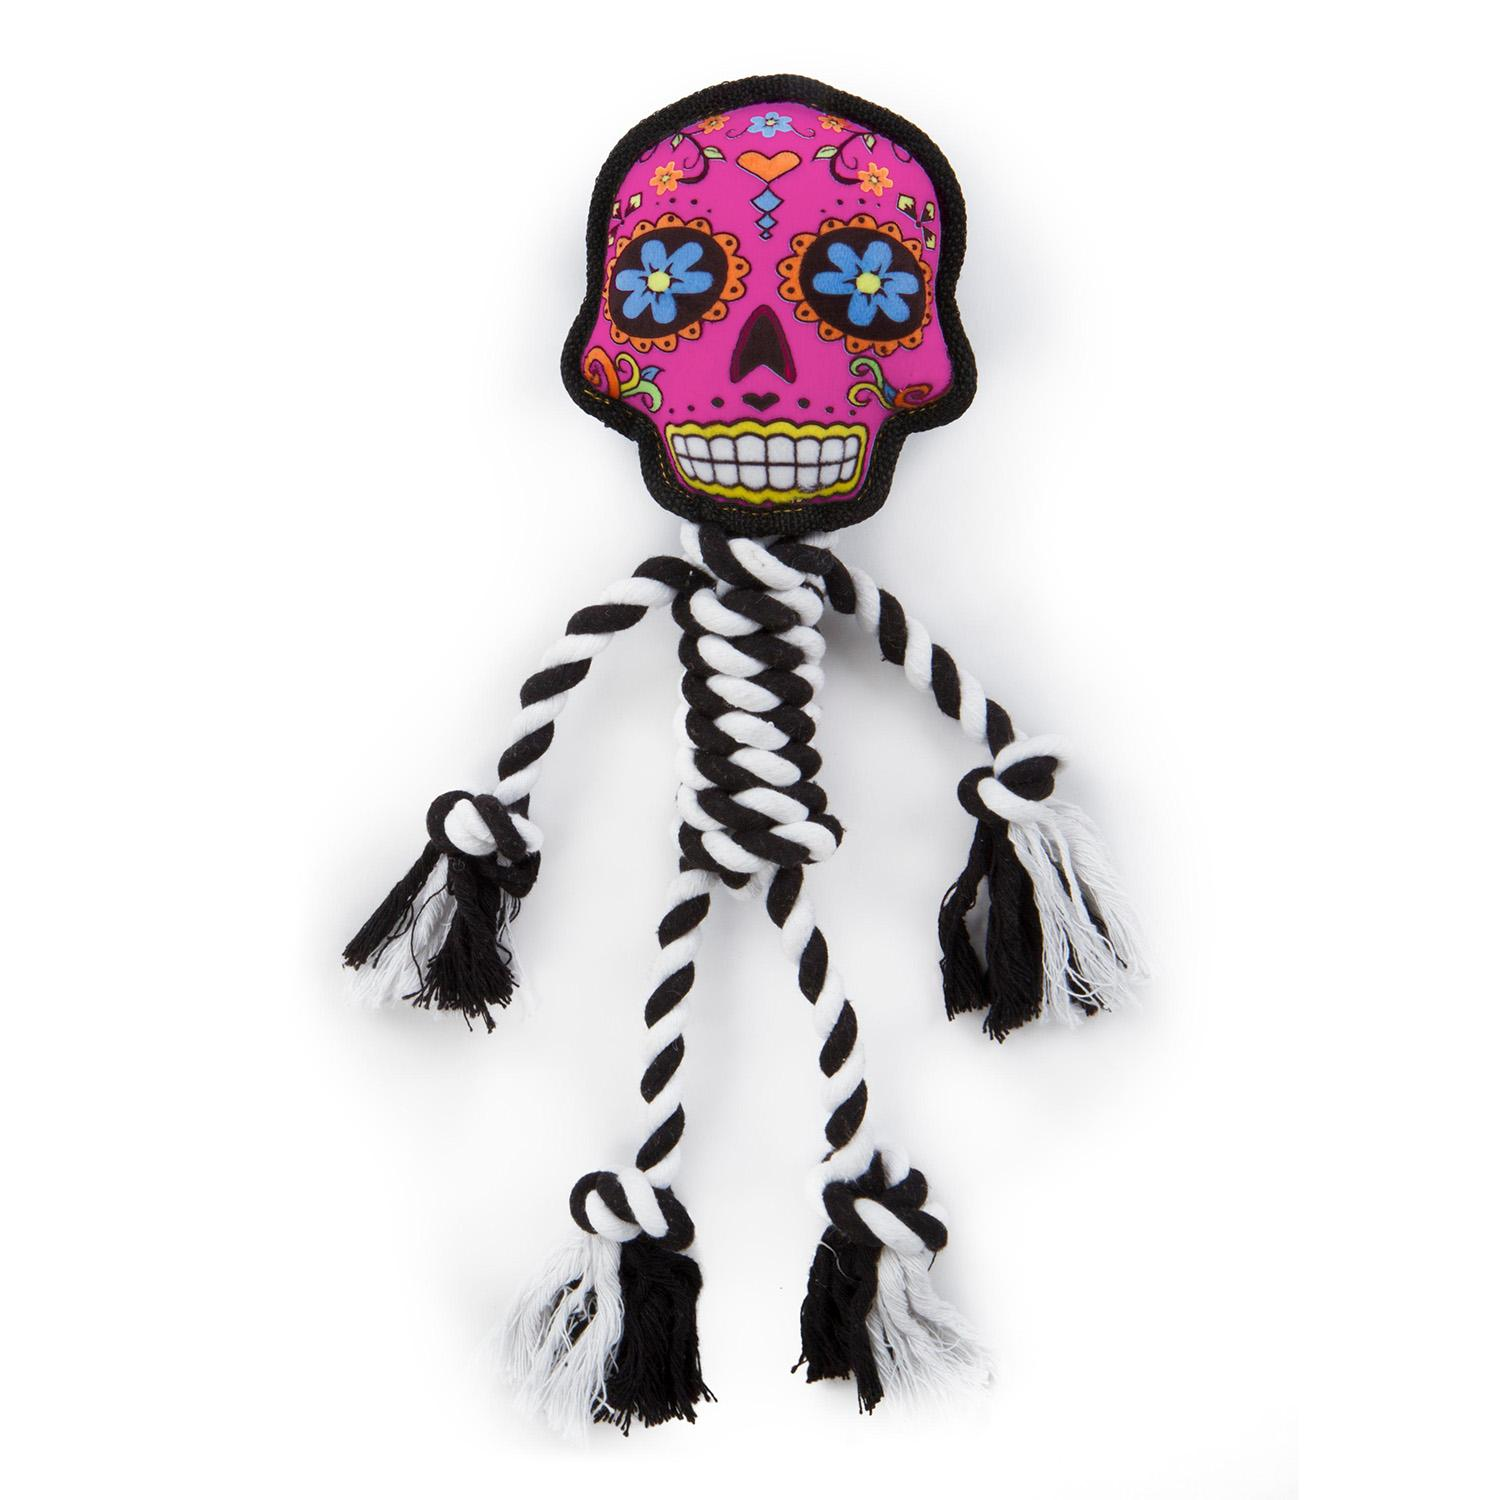 goDog Sugar Skulls Rope Dog Toy - Small Pink